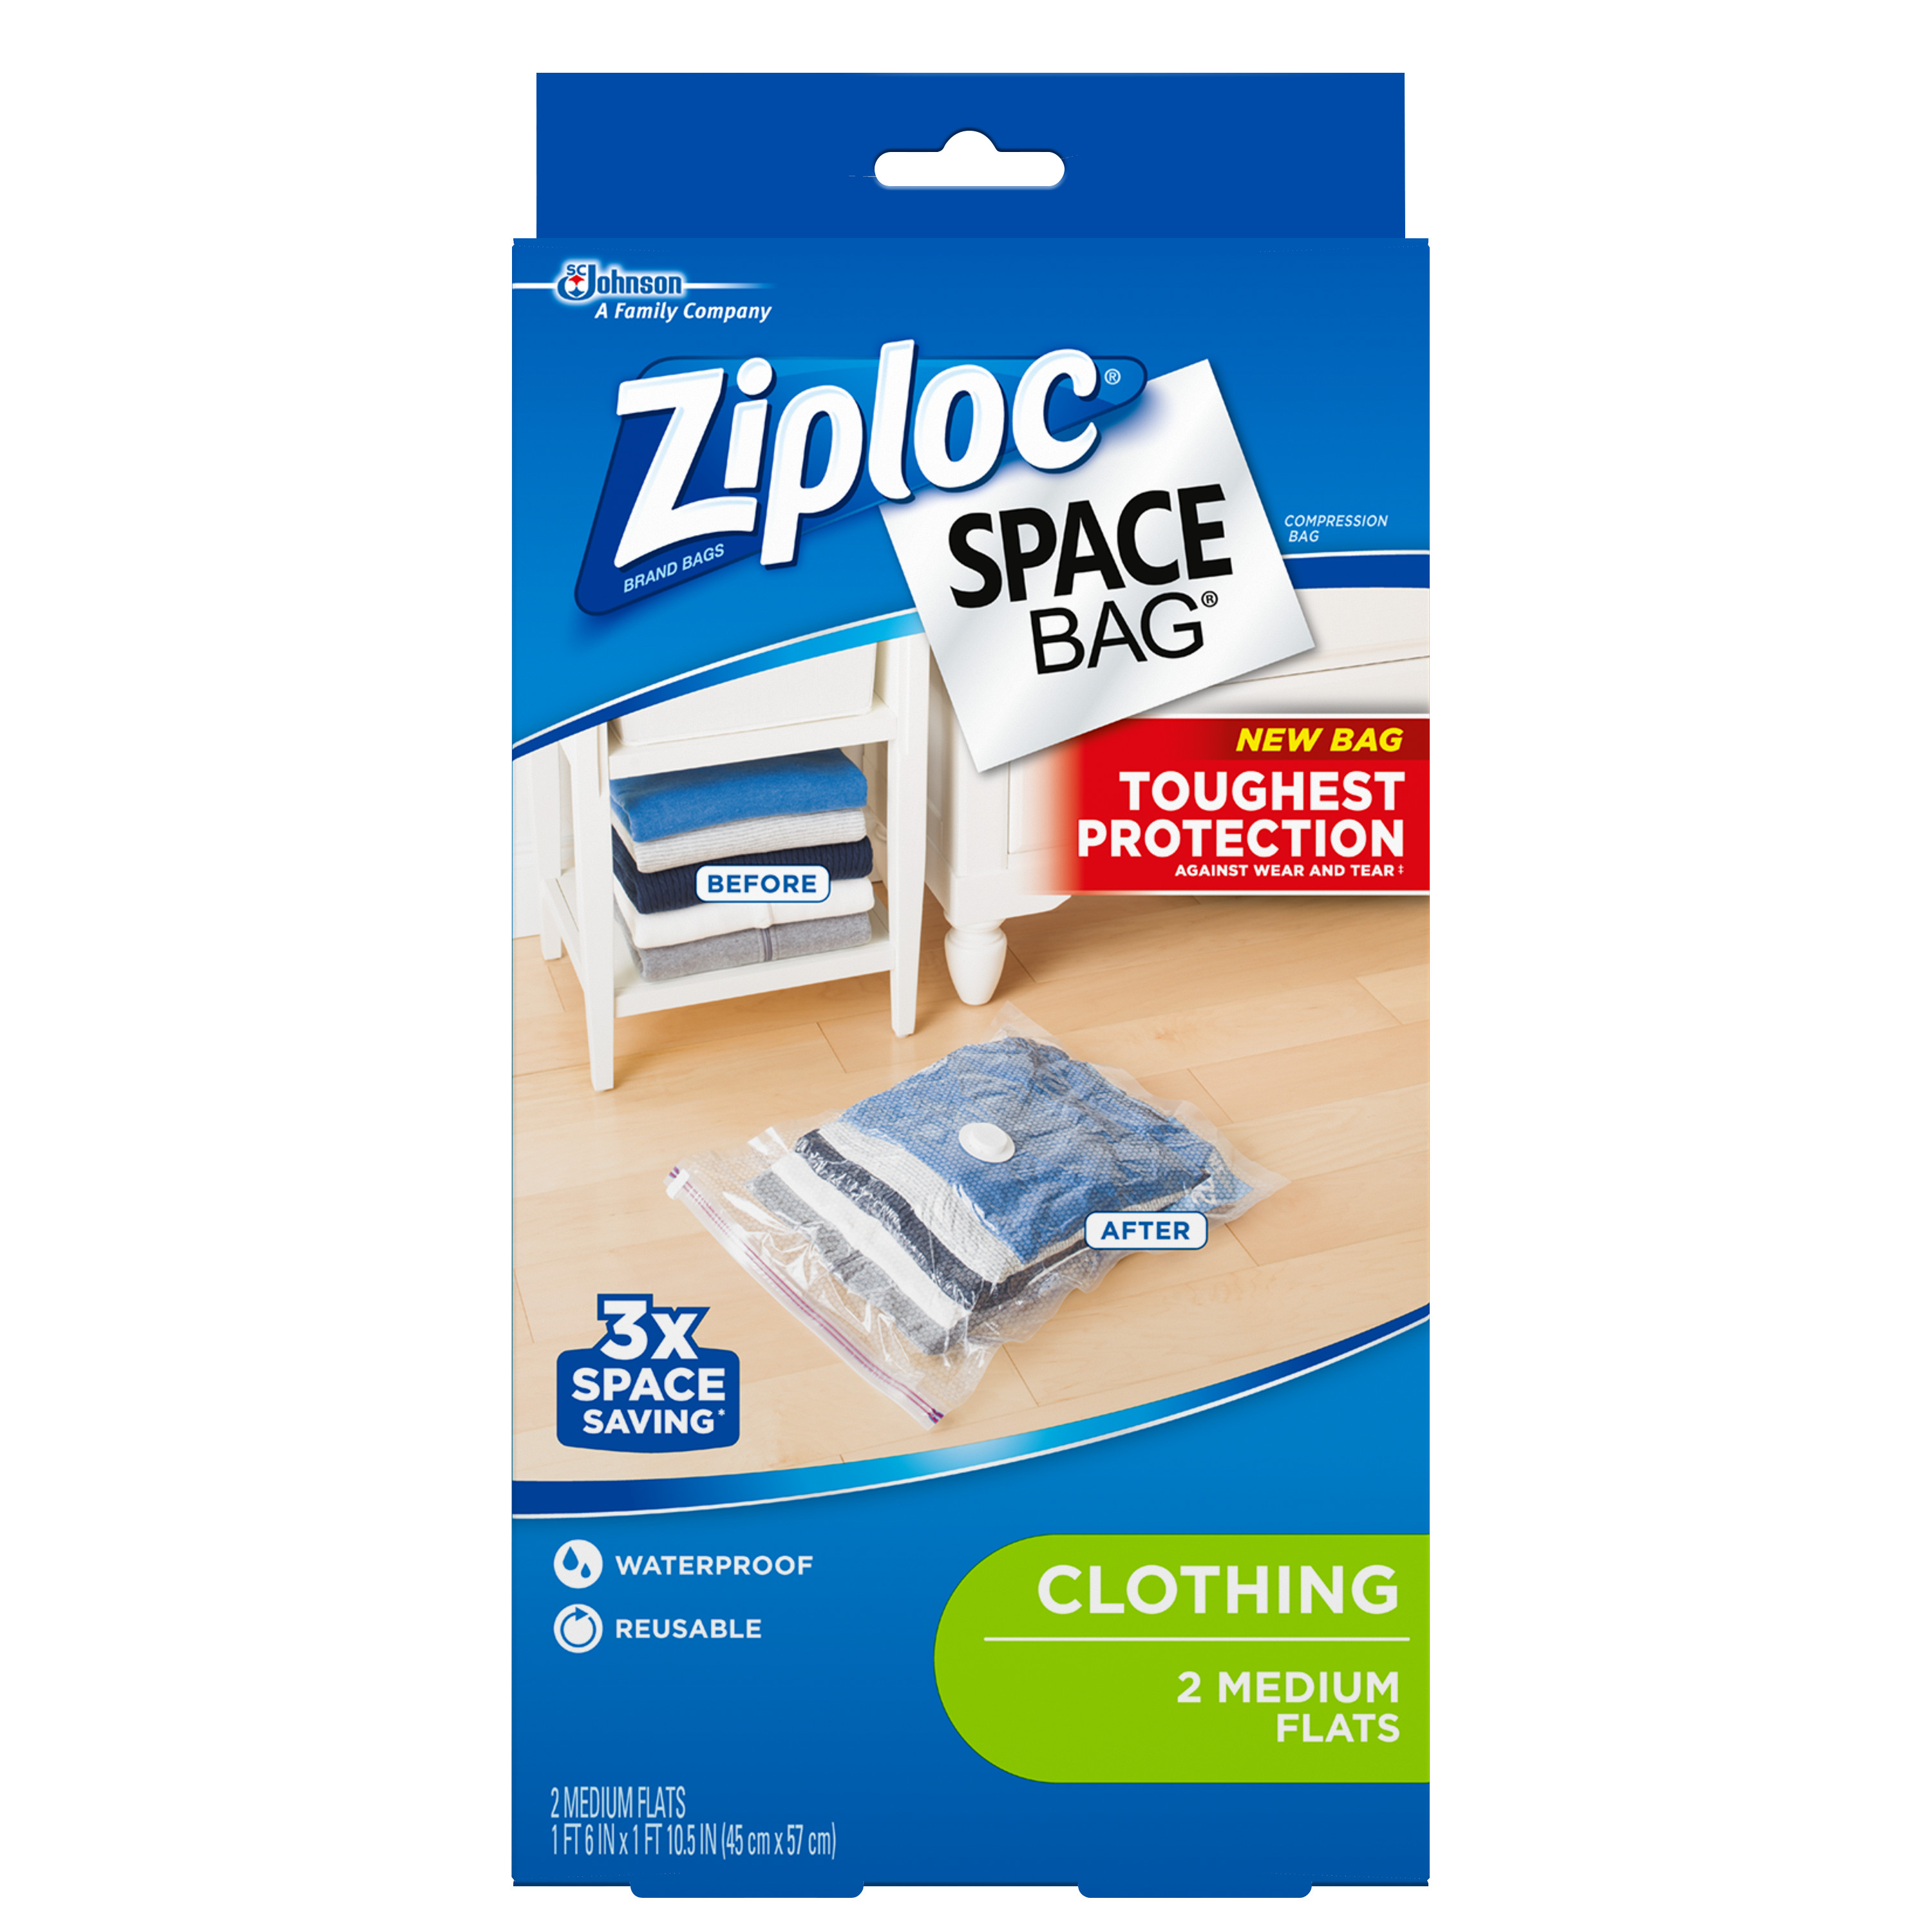 Ziploc Space Bag 2 count Medium Flat Bag